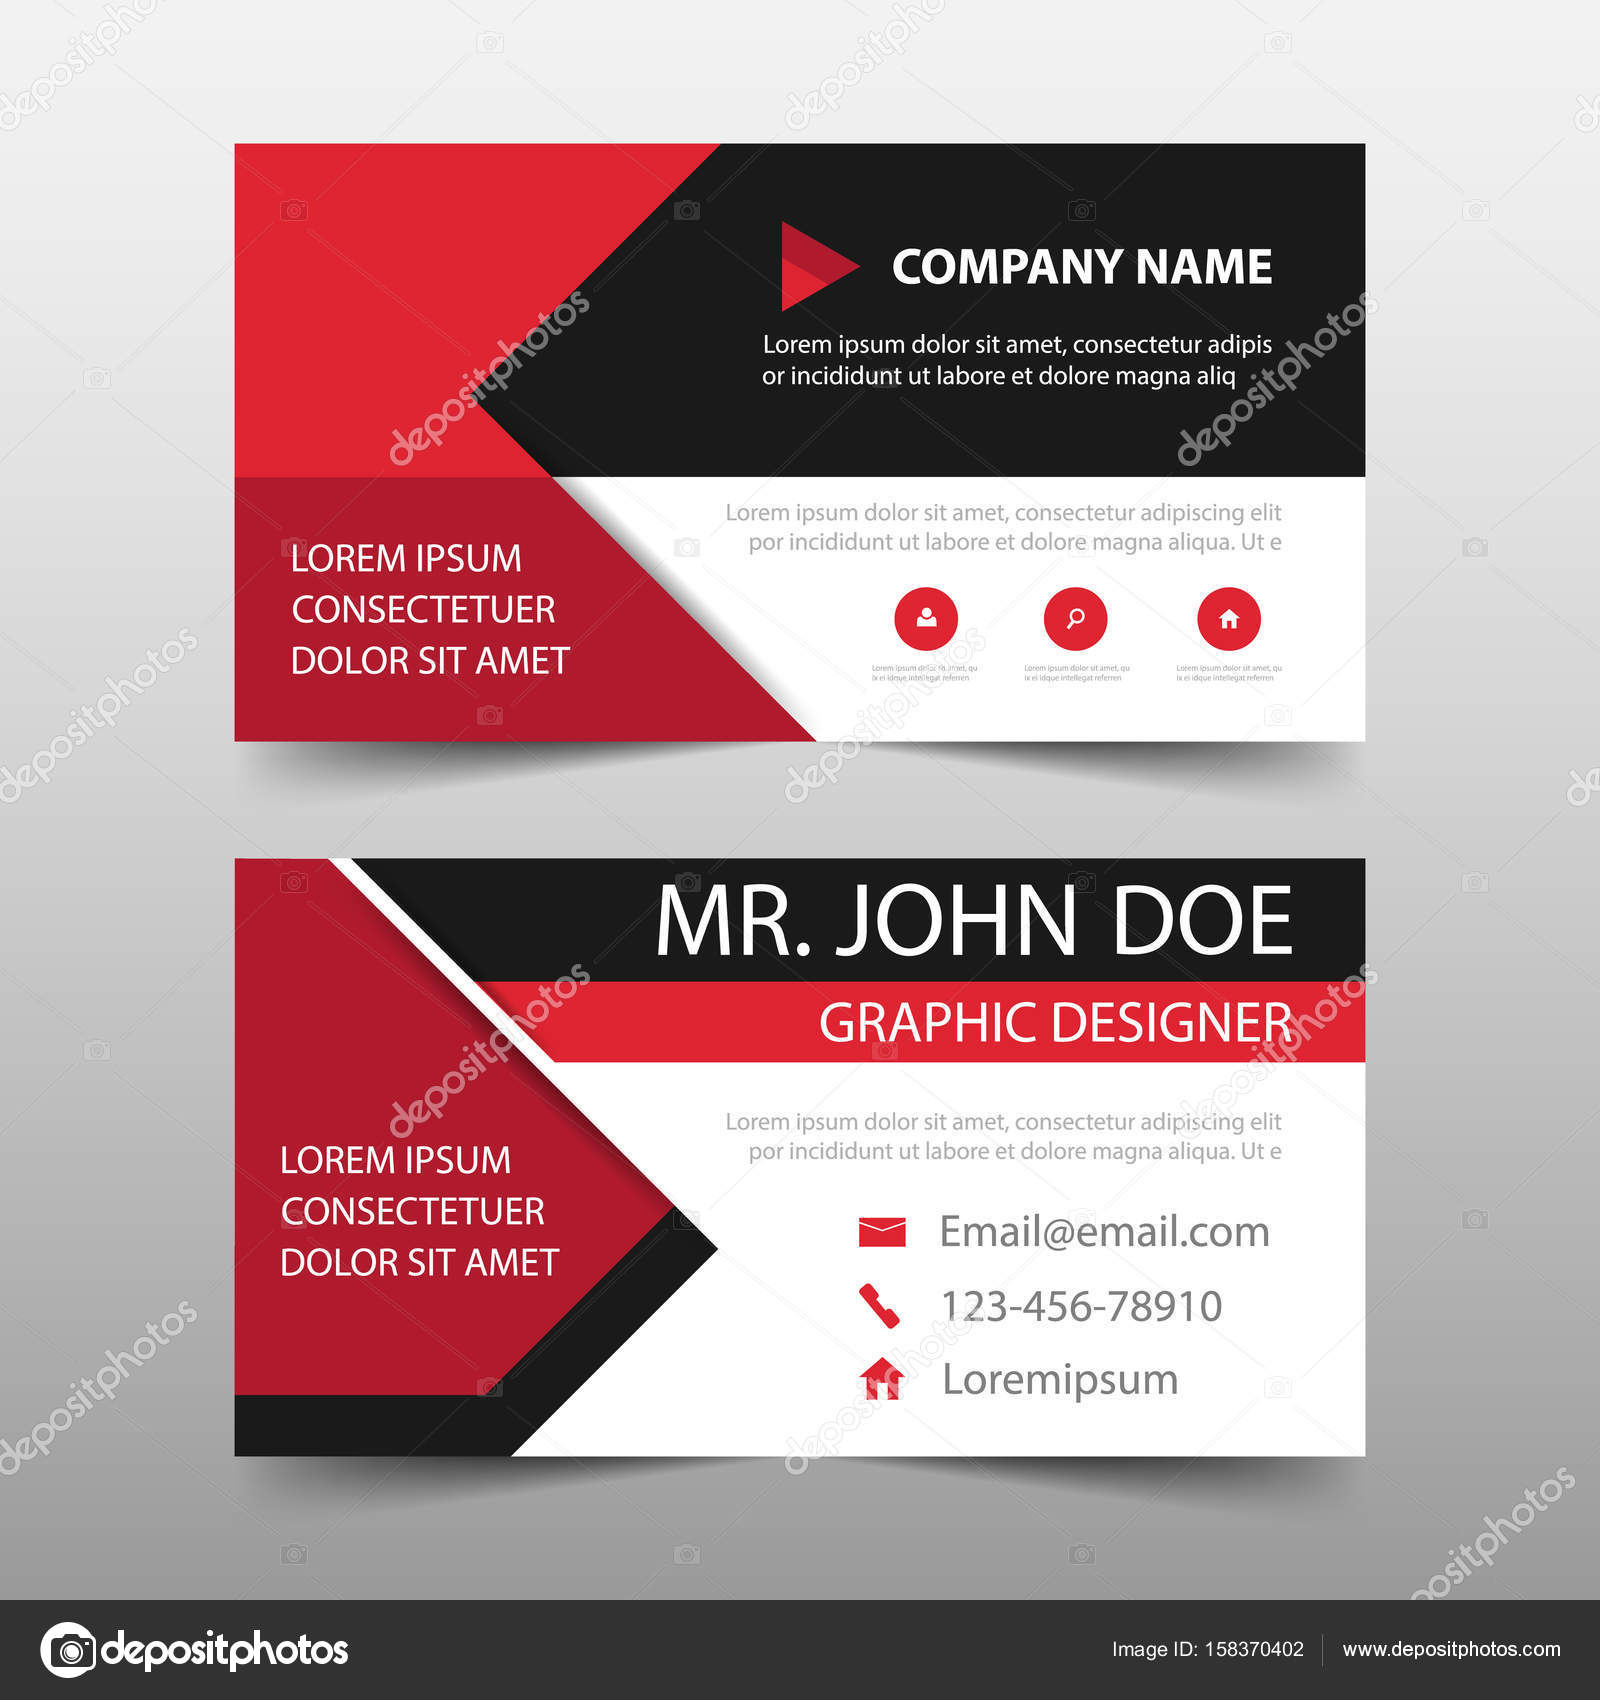 Red corporate business card name card template horizontal simple red corporate business card name card template horizontal simple clean layout design template cheaphphosting Choice Image